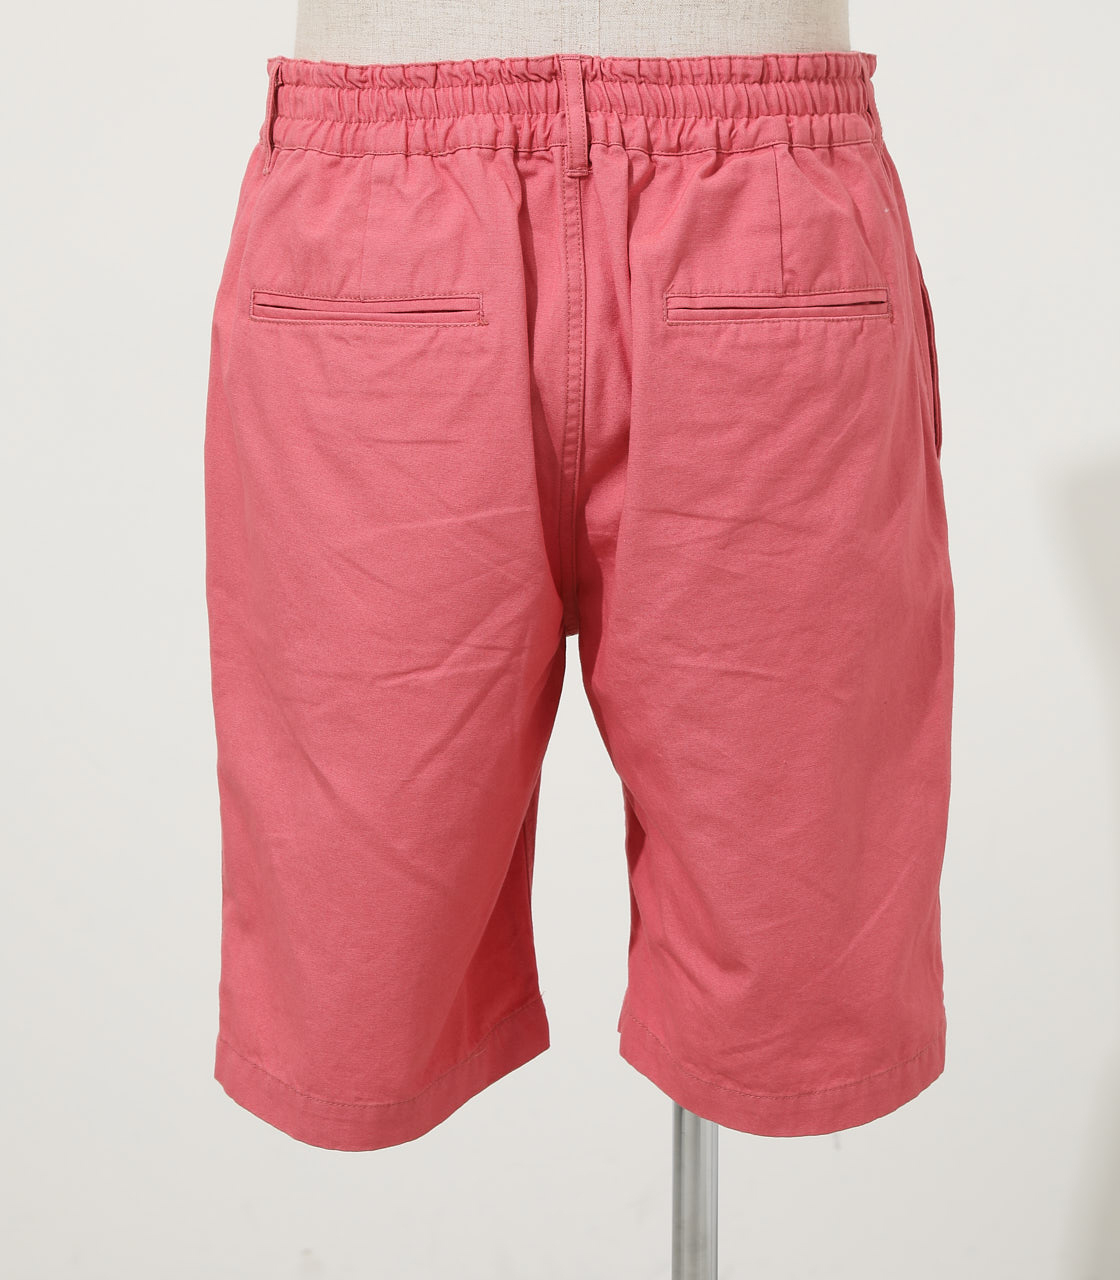 TWILL COLOR SHORTS 詳細画像 PNK 4